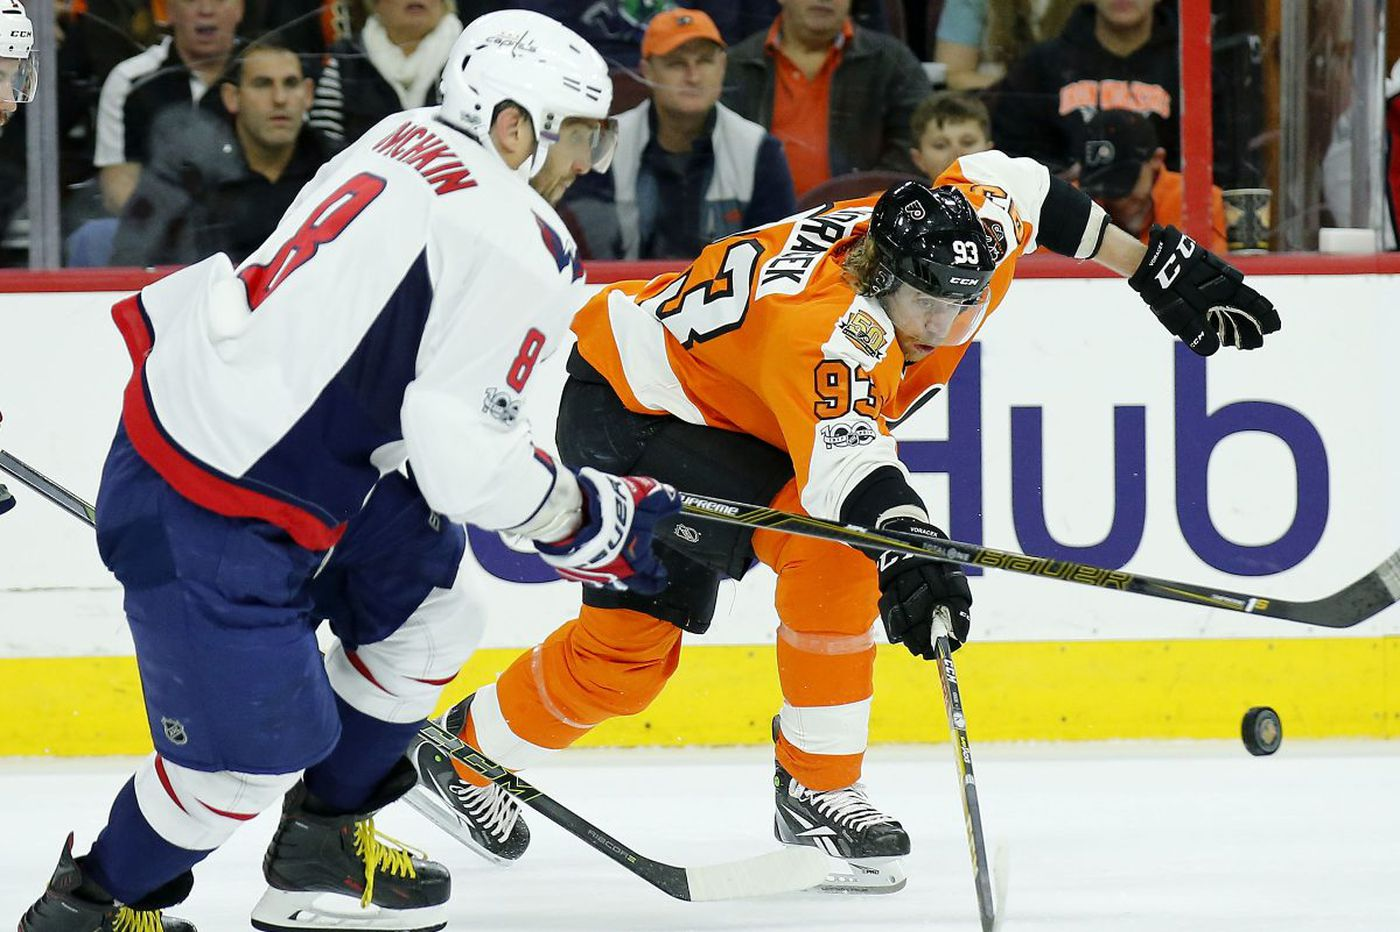 Flyers' grind toward playoffs starts with visit to Washington